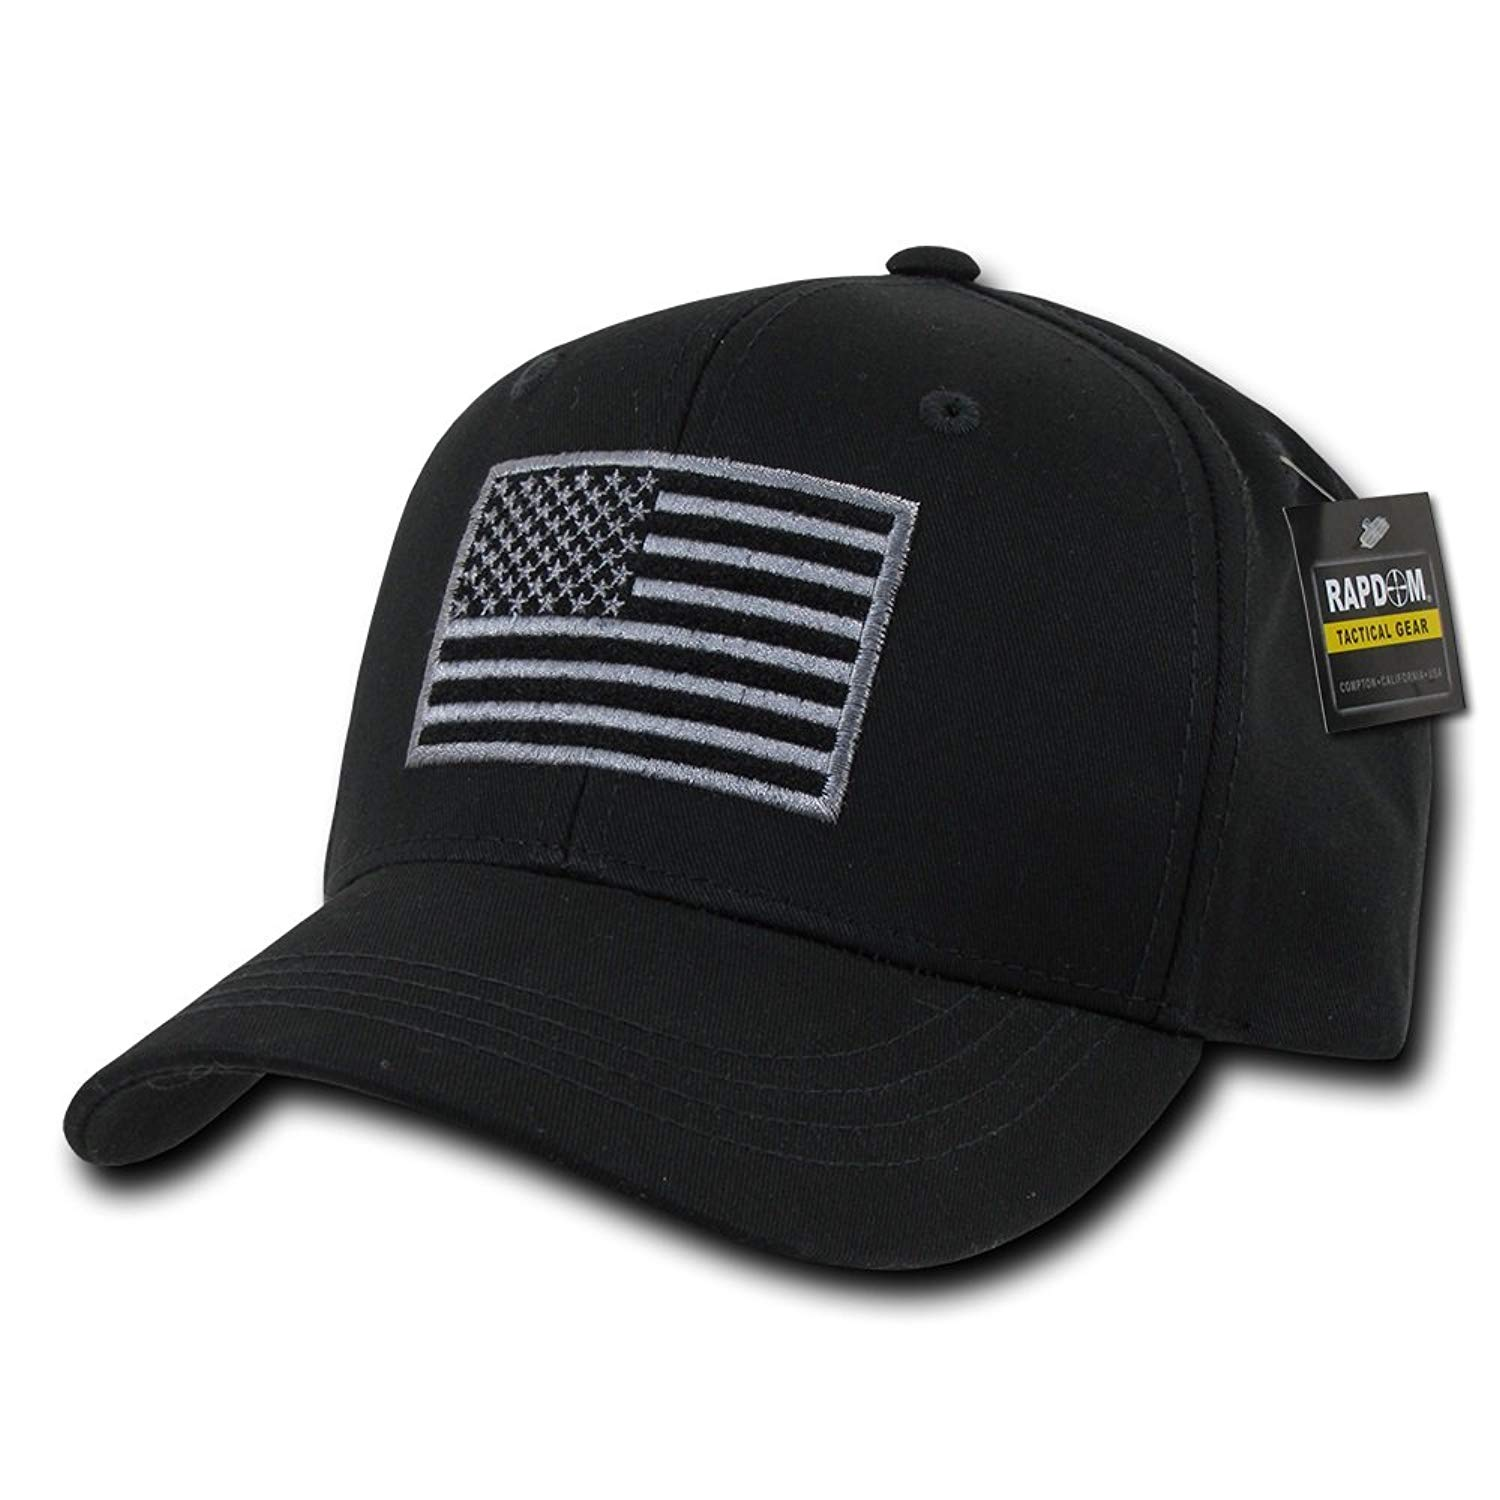 a4ca3500d56 Get Quotations · USA US American Flag Embroidered Tactical Operator Cotton  Structured Baseball Hat Cap